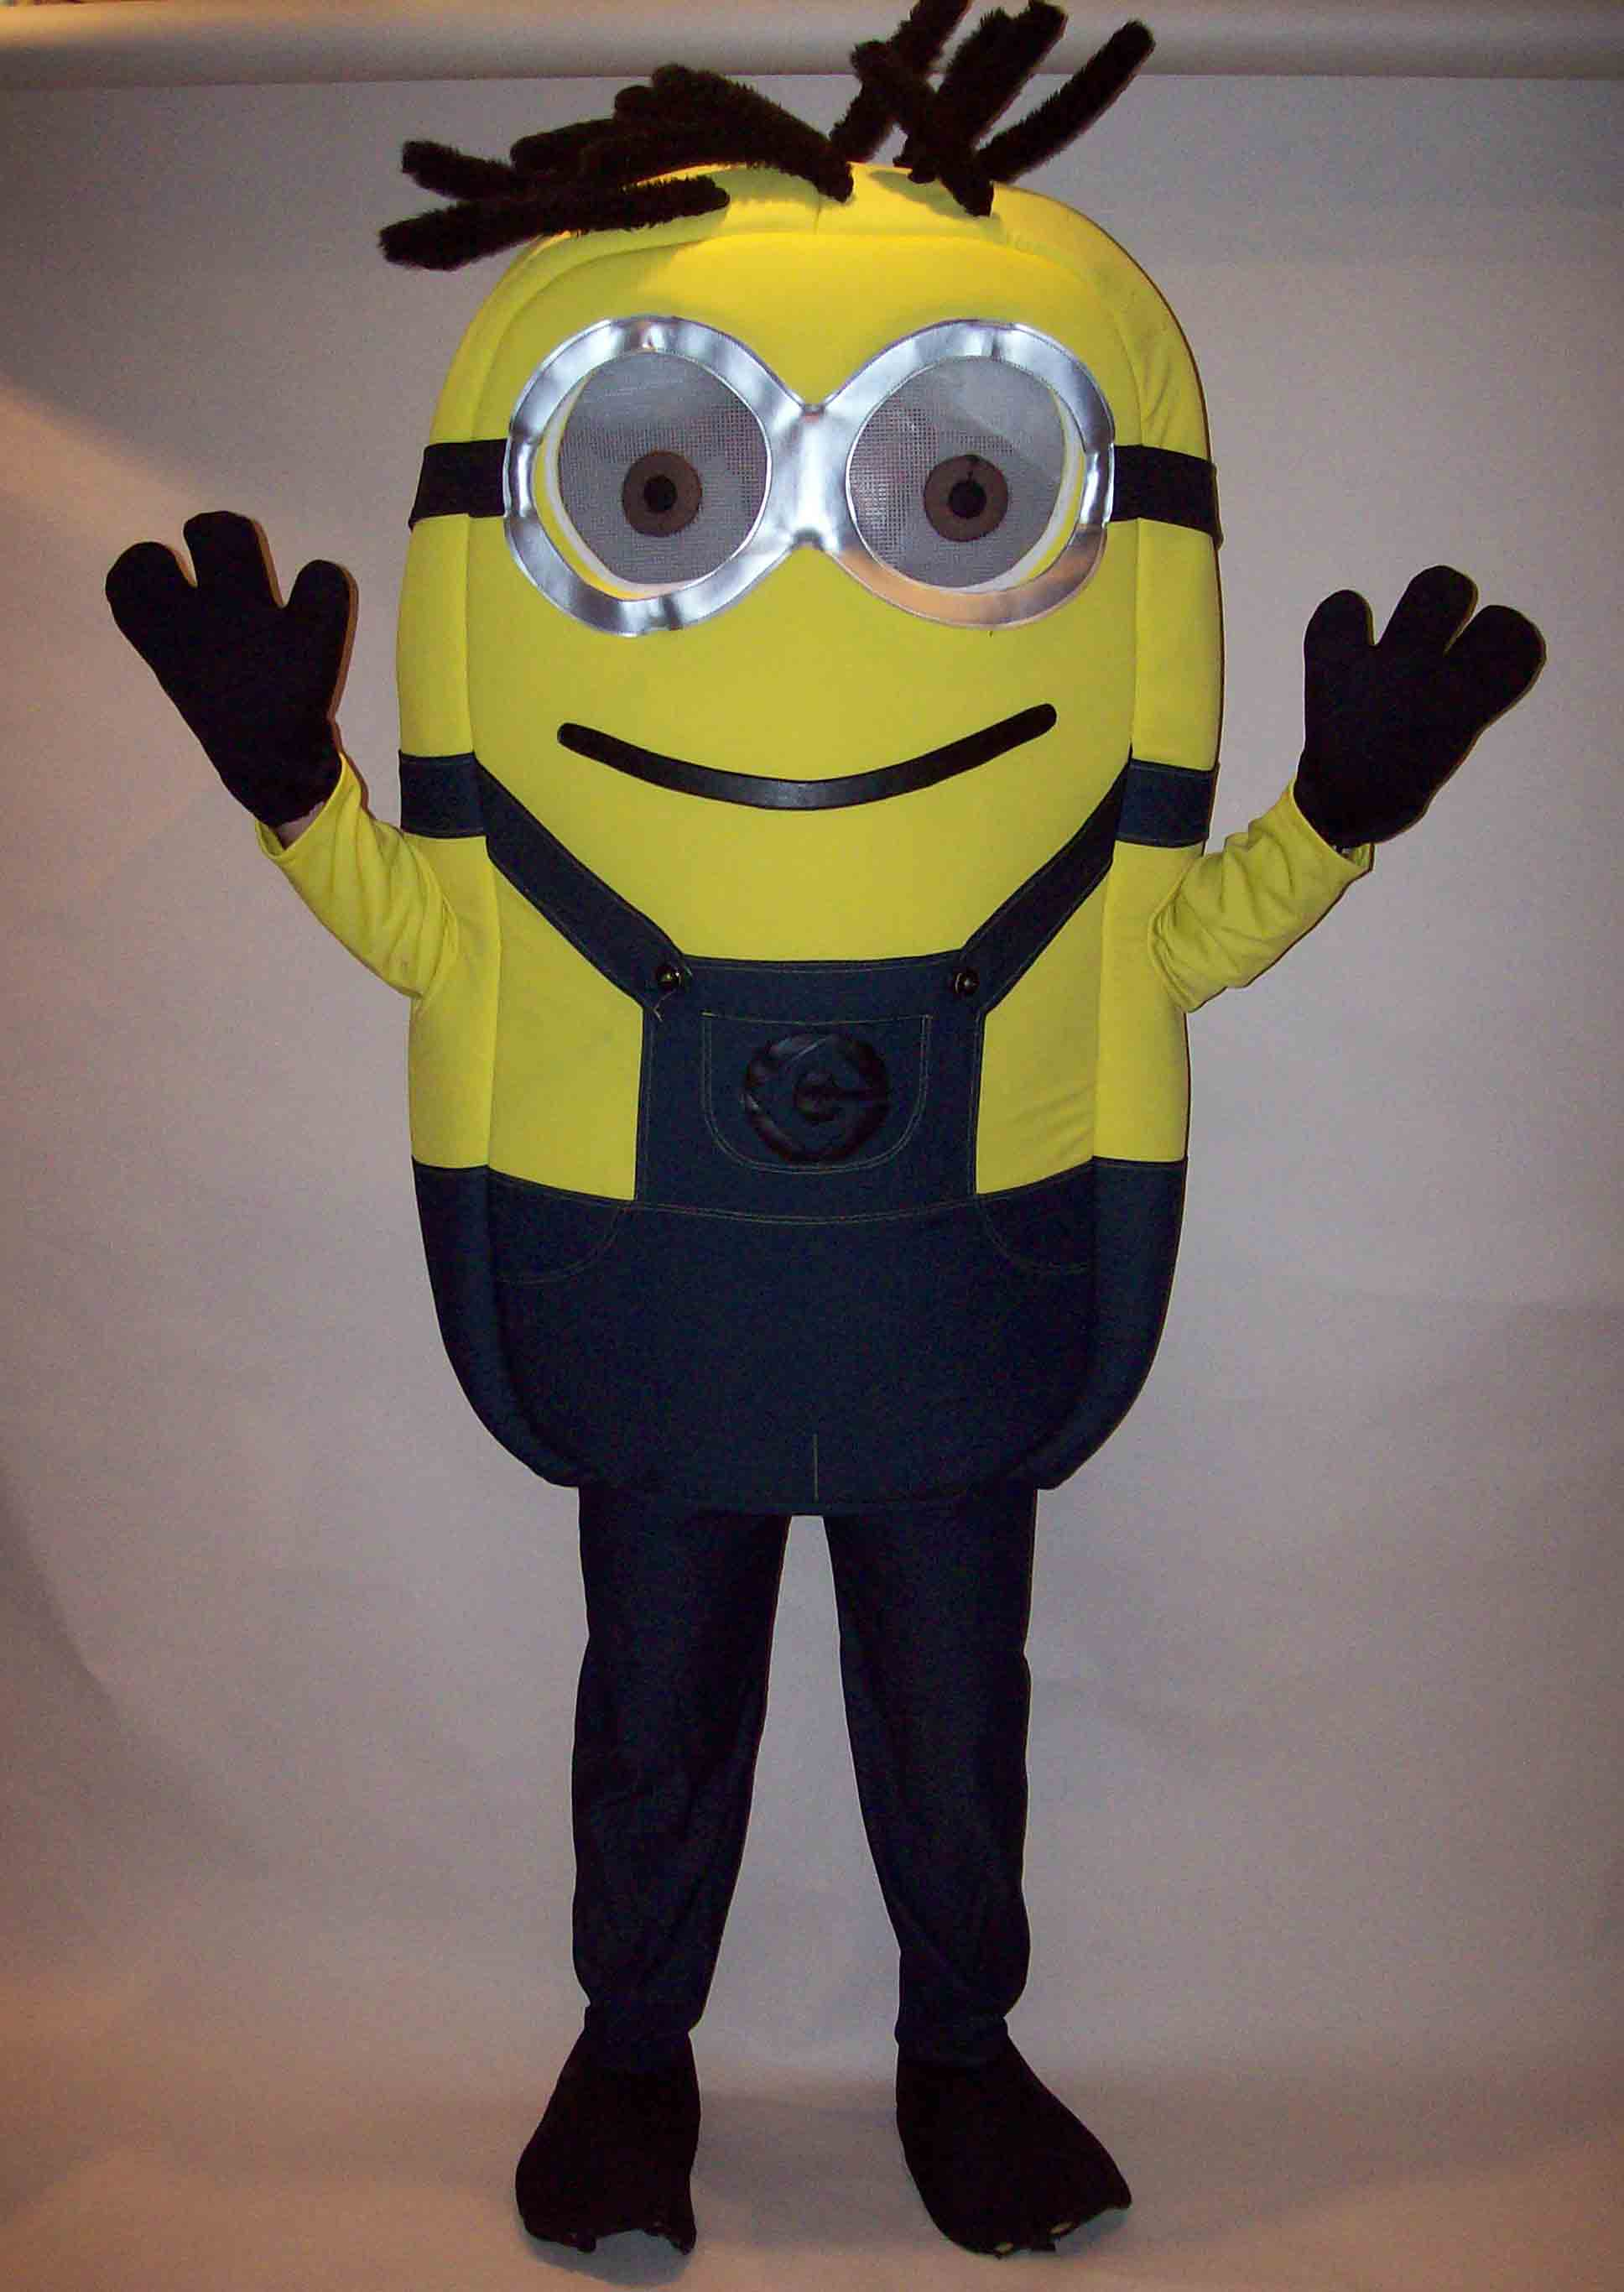 Minion & Quality Mascot u0026 Character Costumes for Hire